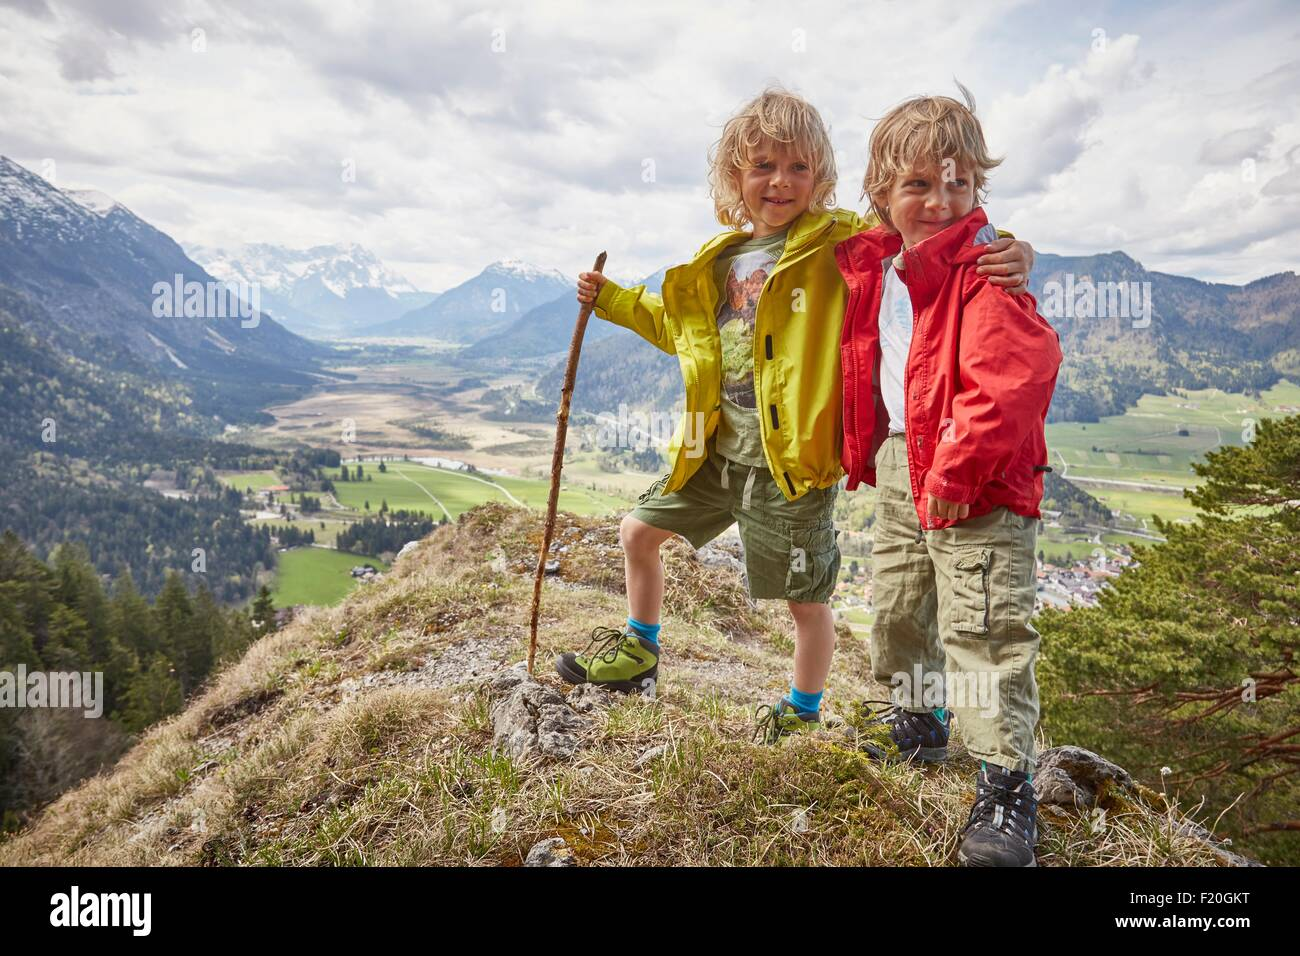 Portrait of two young boys, standing on hilltop, Garmisch-Partenkirchen, Bavaria, Germany Stock Photo